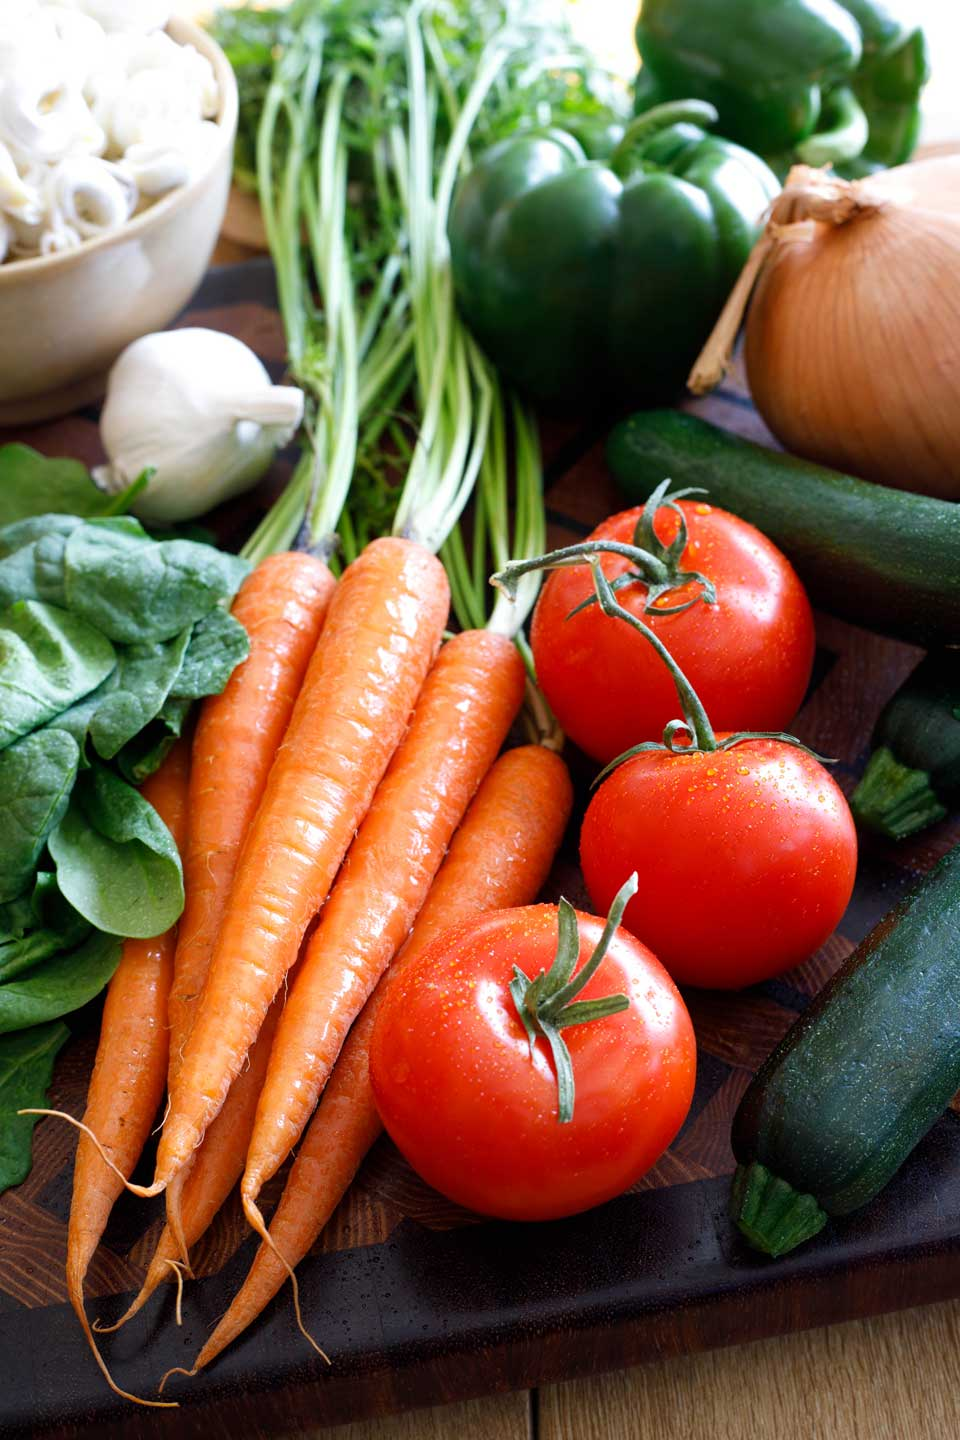 fresh produce like carrots, tomatoes, zucchini, onions, spinach, garlic, and green peppers